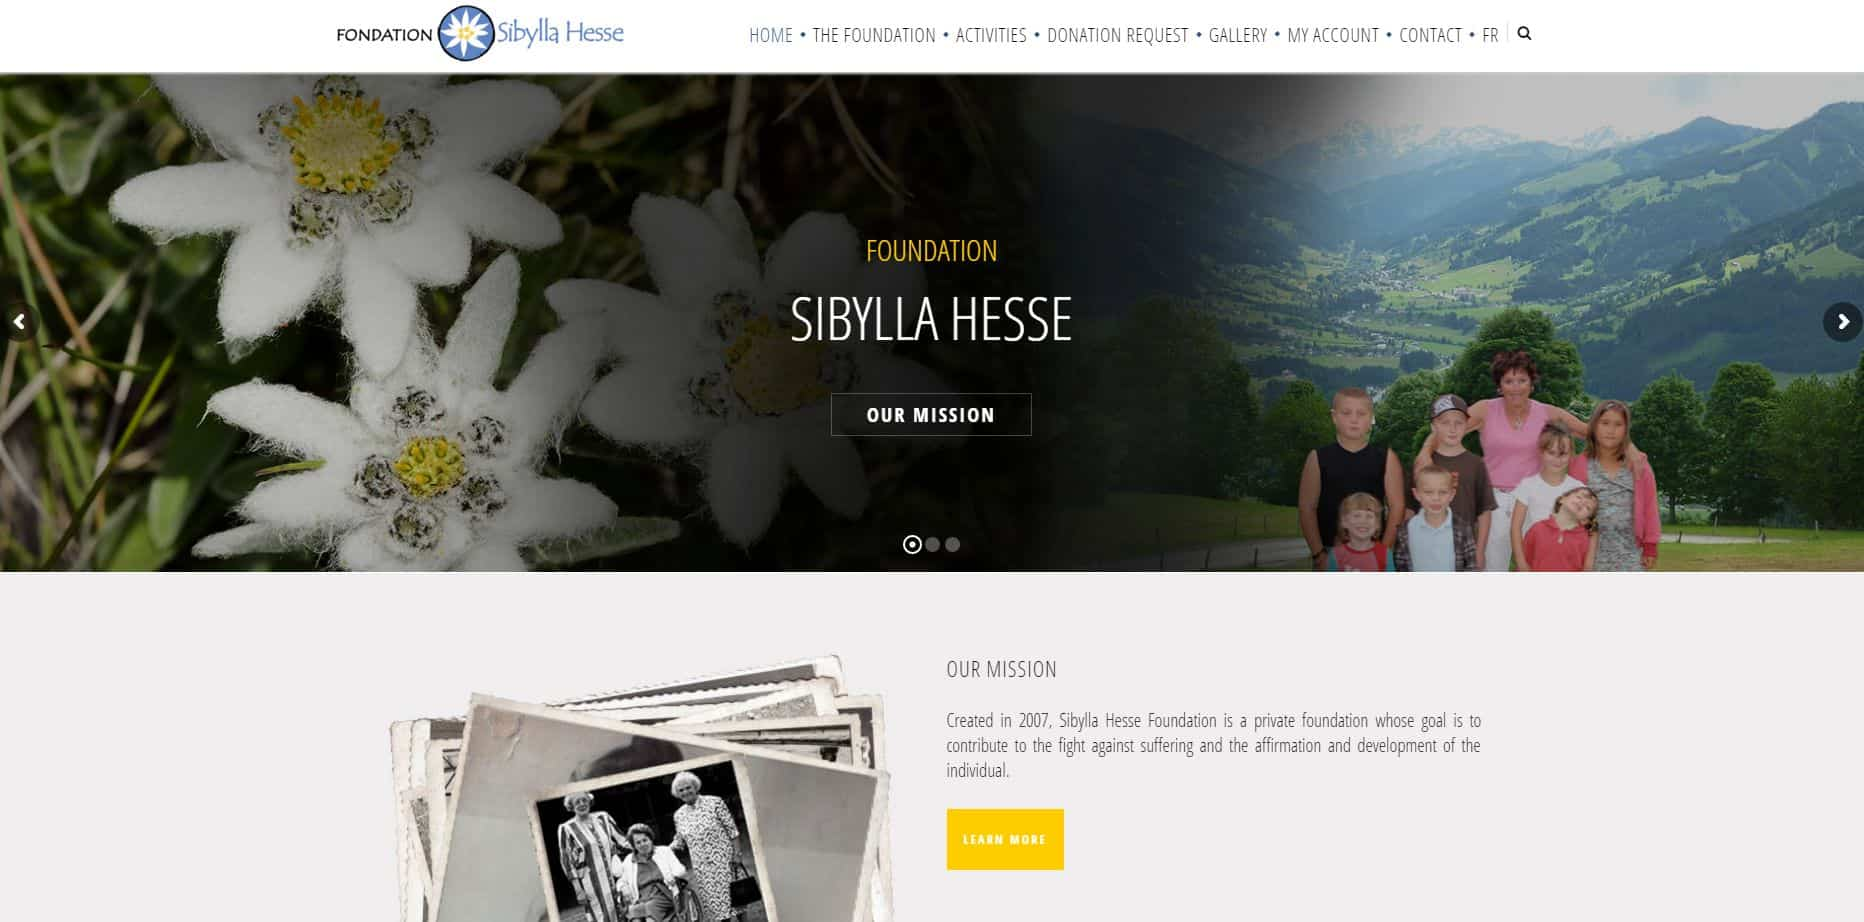 conception-web-fondation-sibylla-hesse-1-1